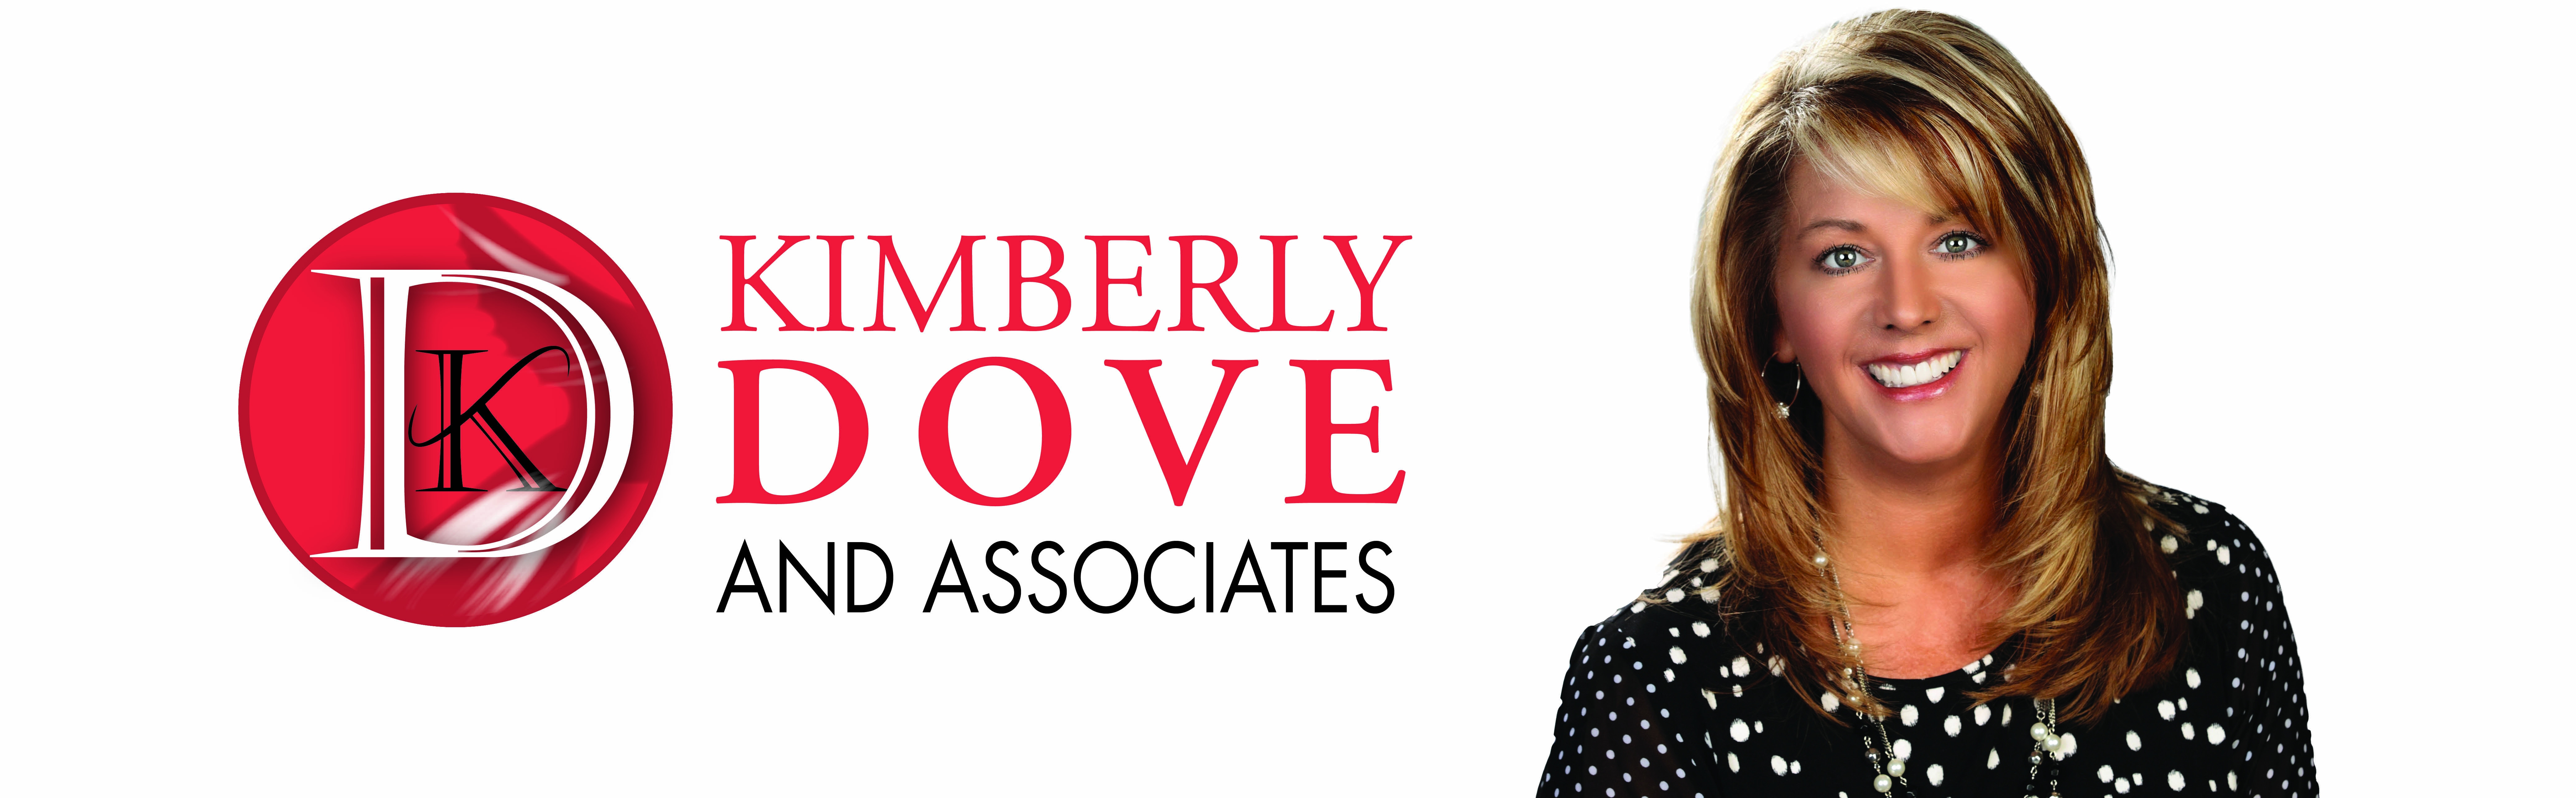 Kimberly Dove and Associates